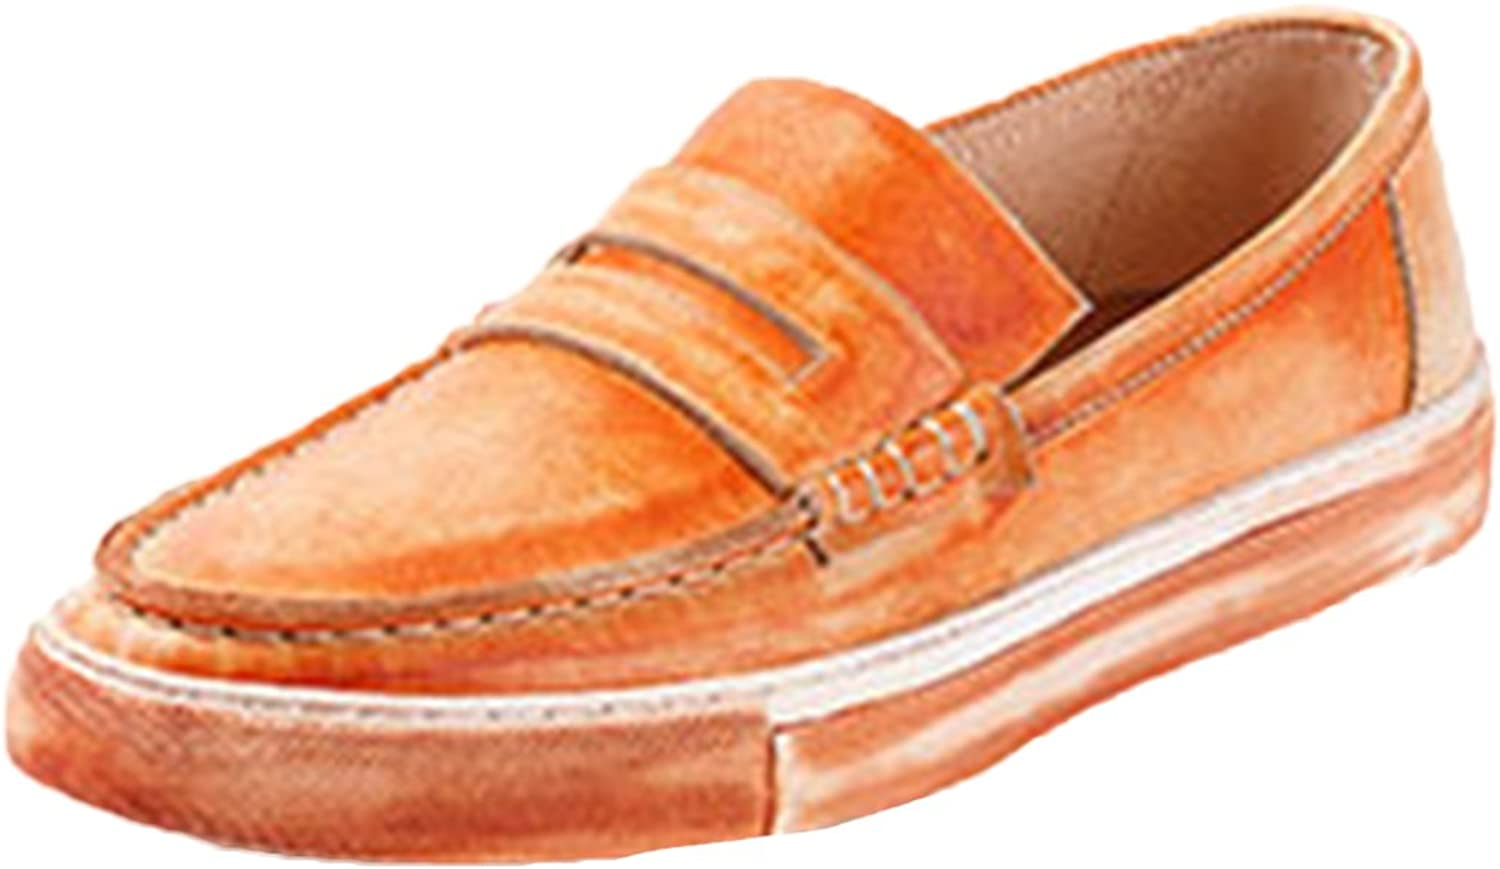 Icegrey Men's Leather Slipper Casual Slip On Loafers shoes